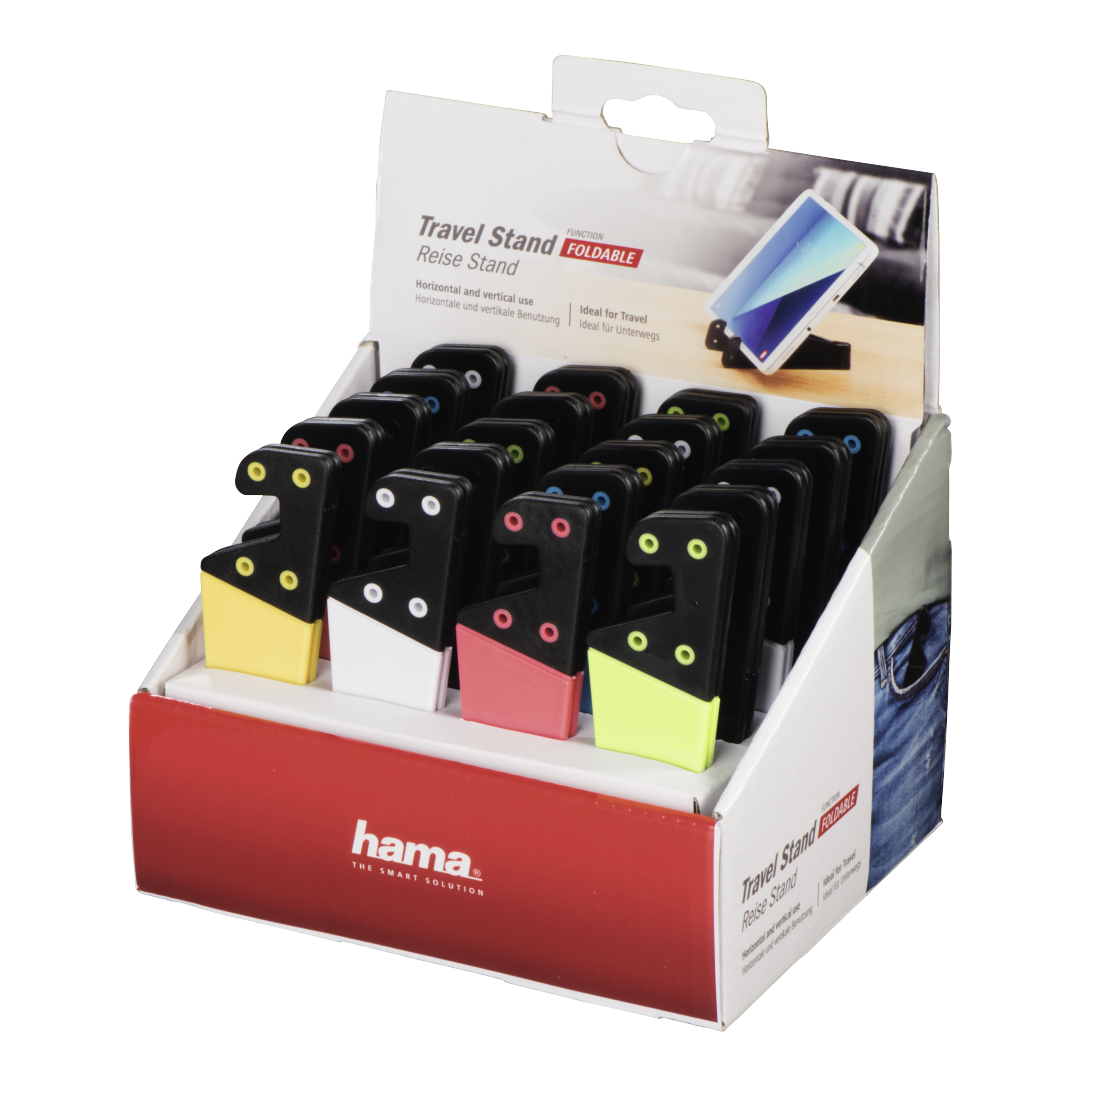 abx High-Res Image - Hama, Travel Holder for Tablets and Smartphones, 20 pieces in a display box